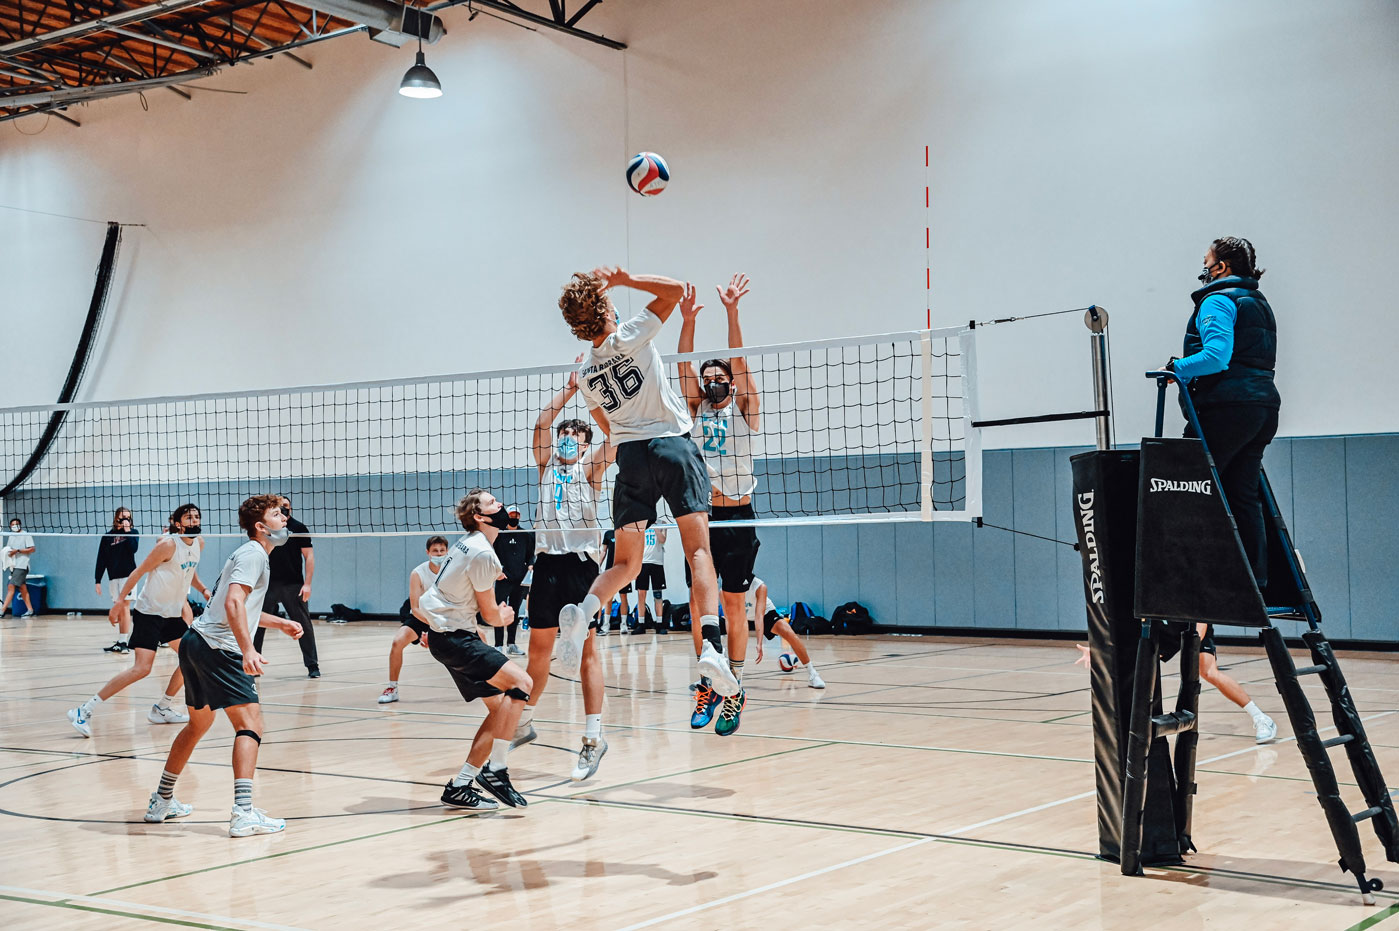 Volleyball player going up for a spike at the net